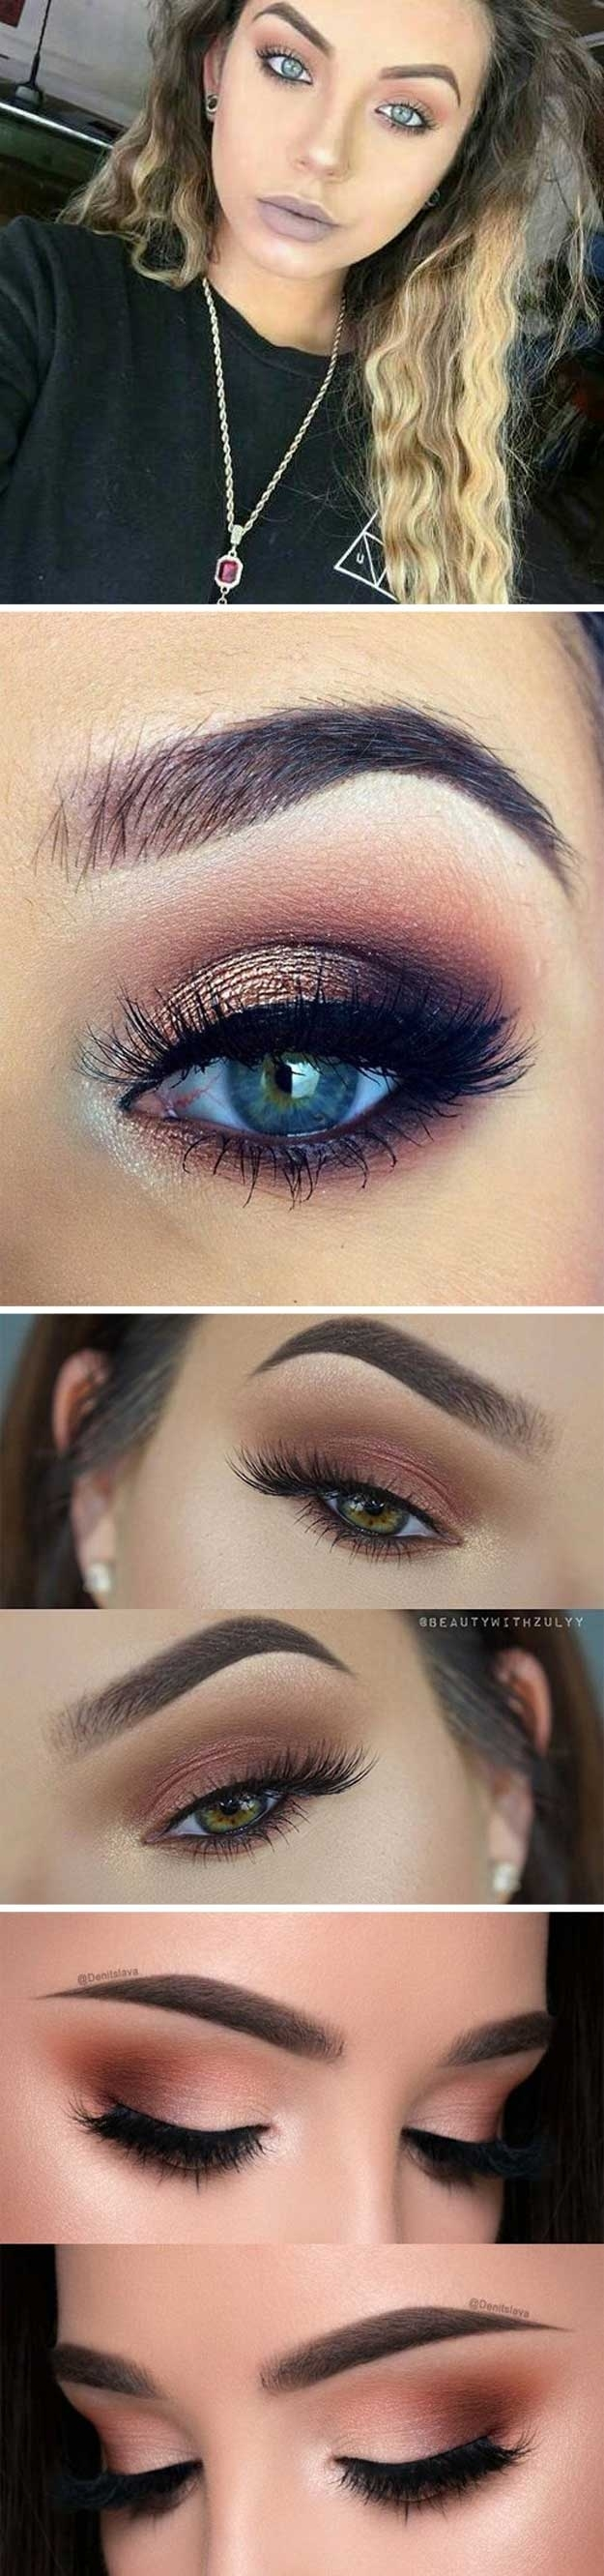 35 Wedding Makeup For Blue Eyes - The Goddess intended for Best Color Makeup For Blue Eyes And Brown Hair